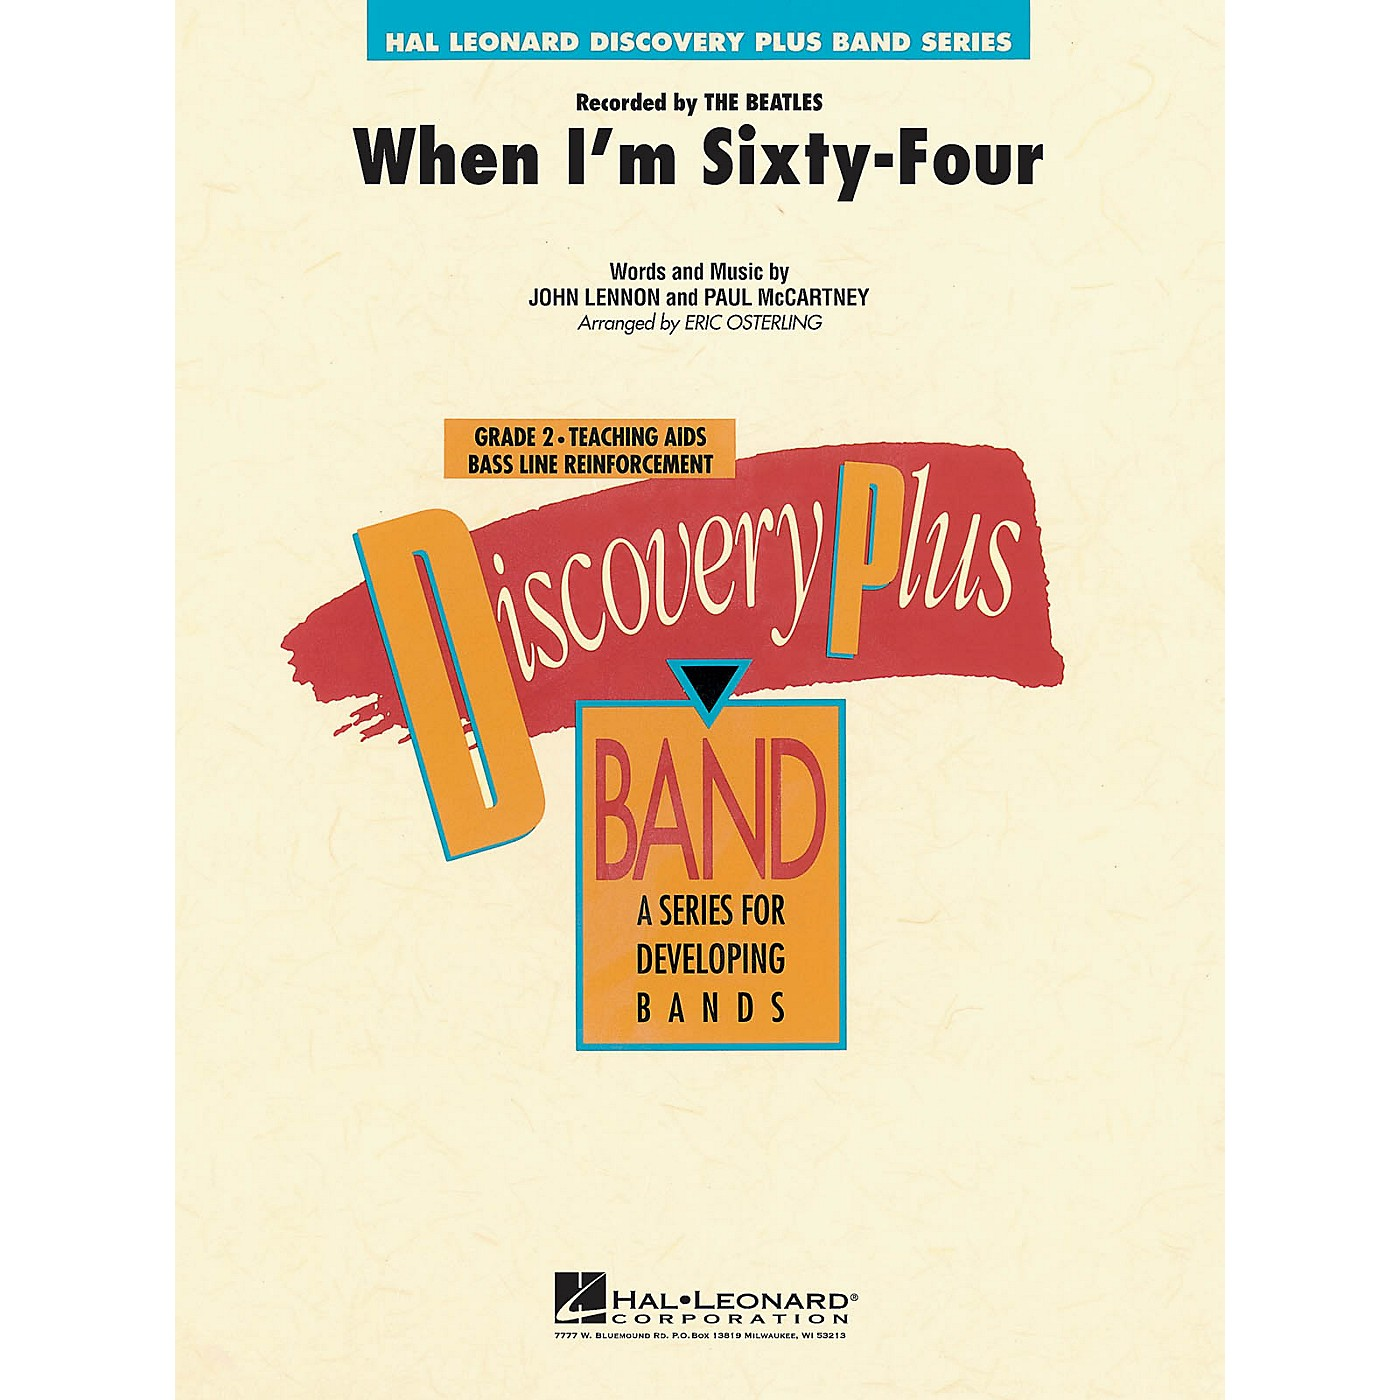 Hal Leonard When I'm Sixty-four - Discovery Plus Concert Band Series Level 2 arranged by Eric Osterling thumbnail